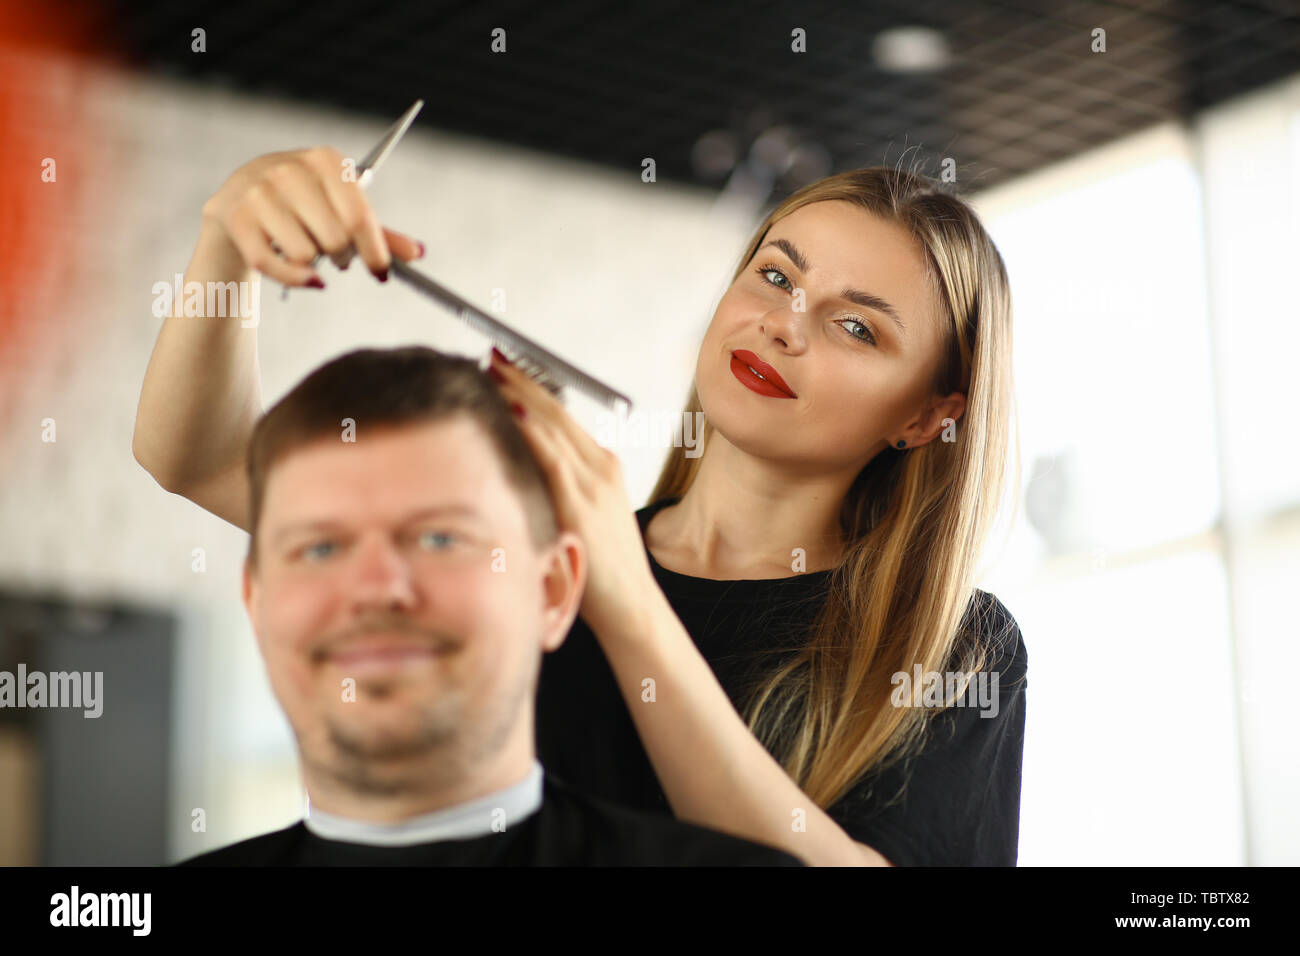 Female Hairdresser Combing Male Client in Salon. Woman Hairstylist Making Hairstyle for Man Sitting in Beauty Studio. Stylist Holding Comb and Scissor Stock Photo